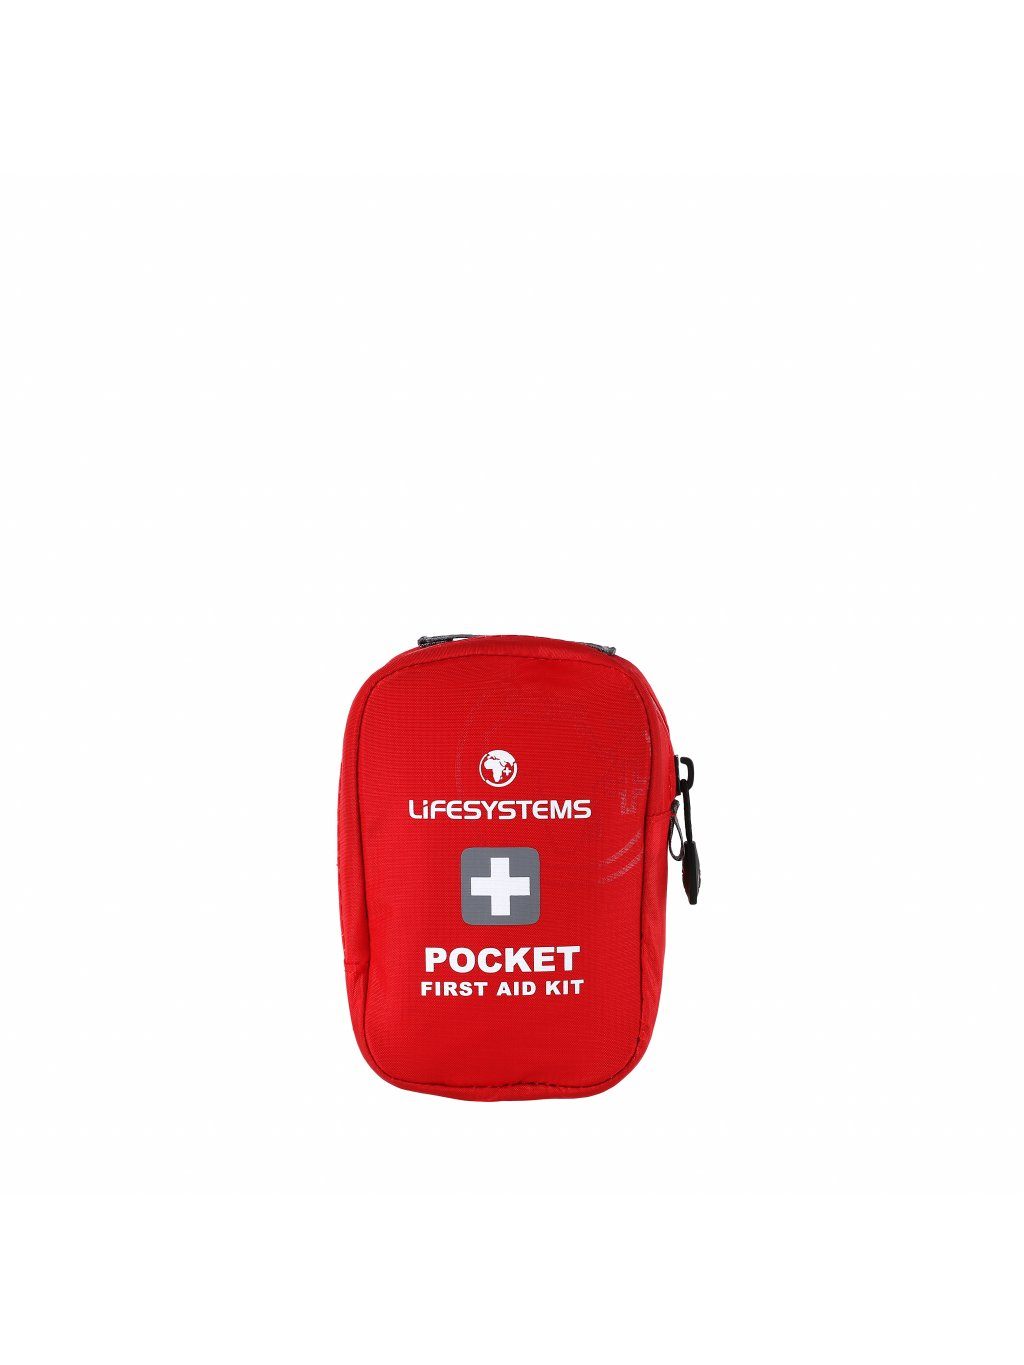 1040 pocket first aid kit 1